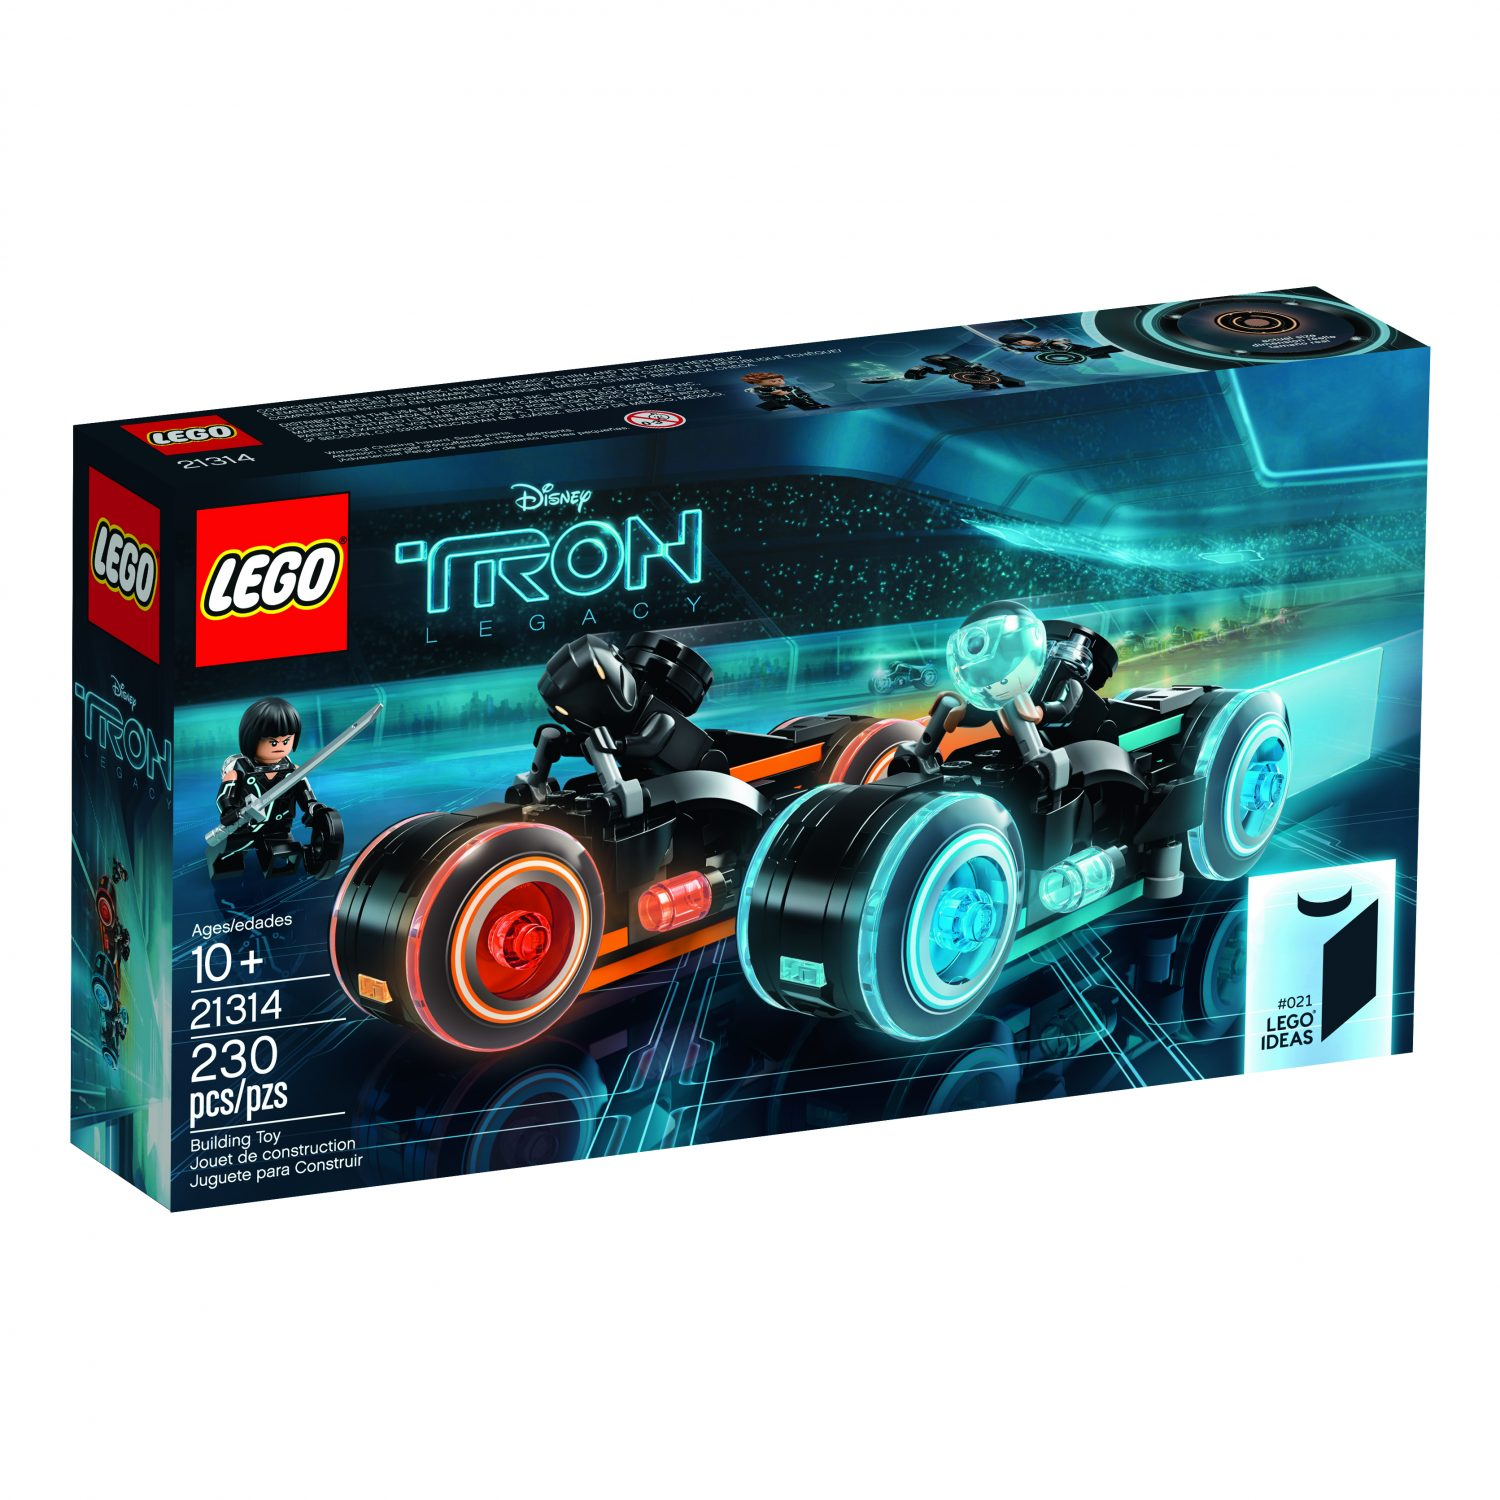 LEGO TRON: Legacy 21314 Set Official Press Release